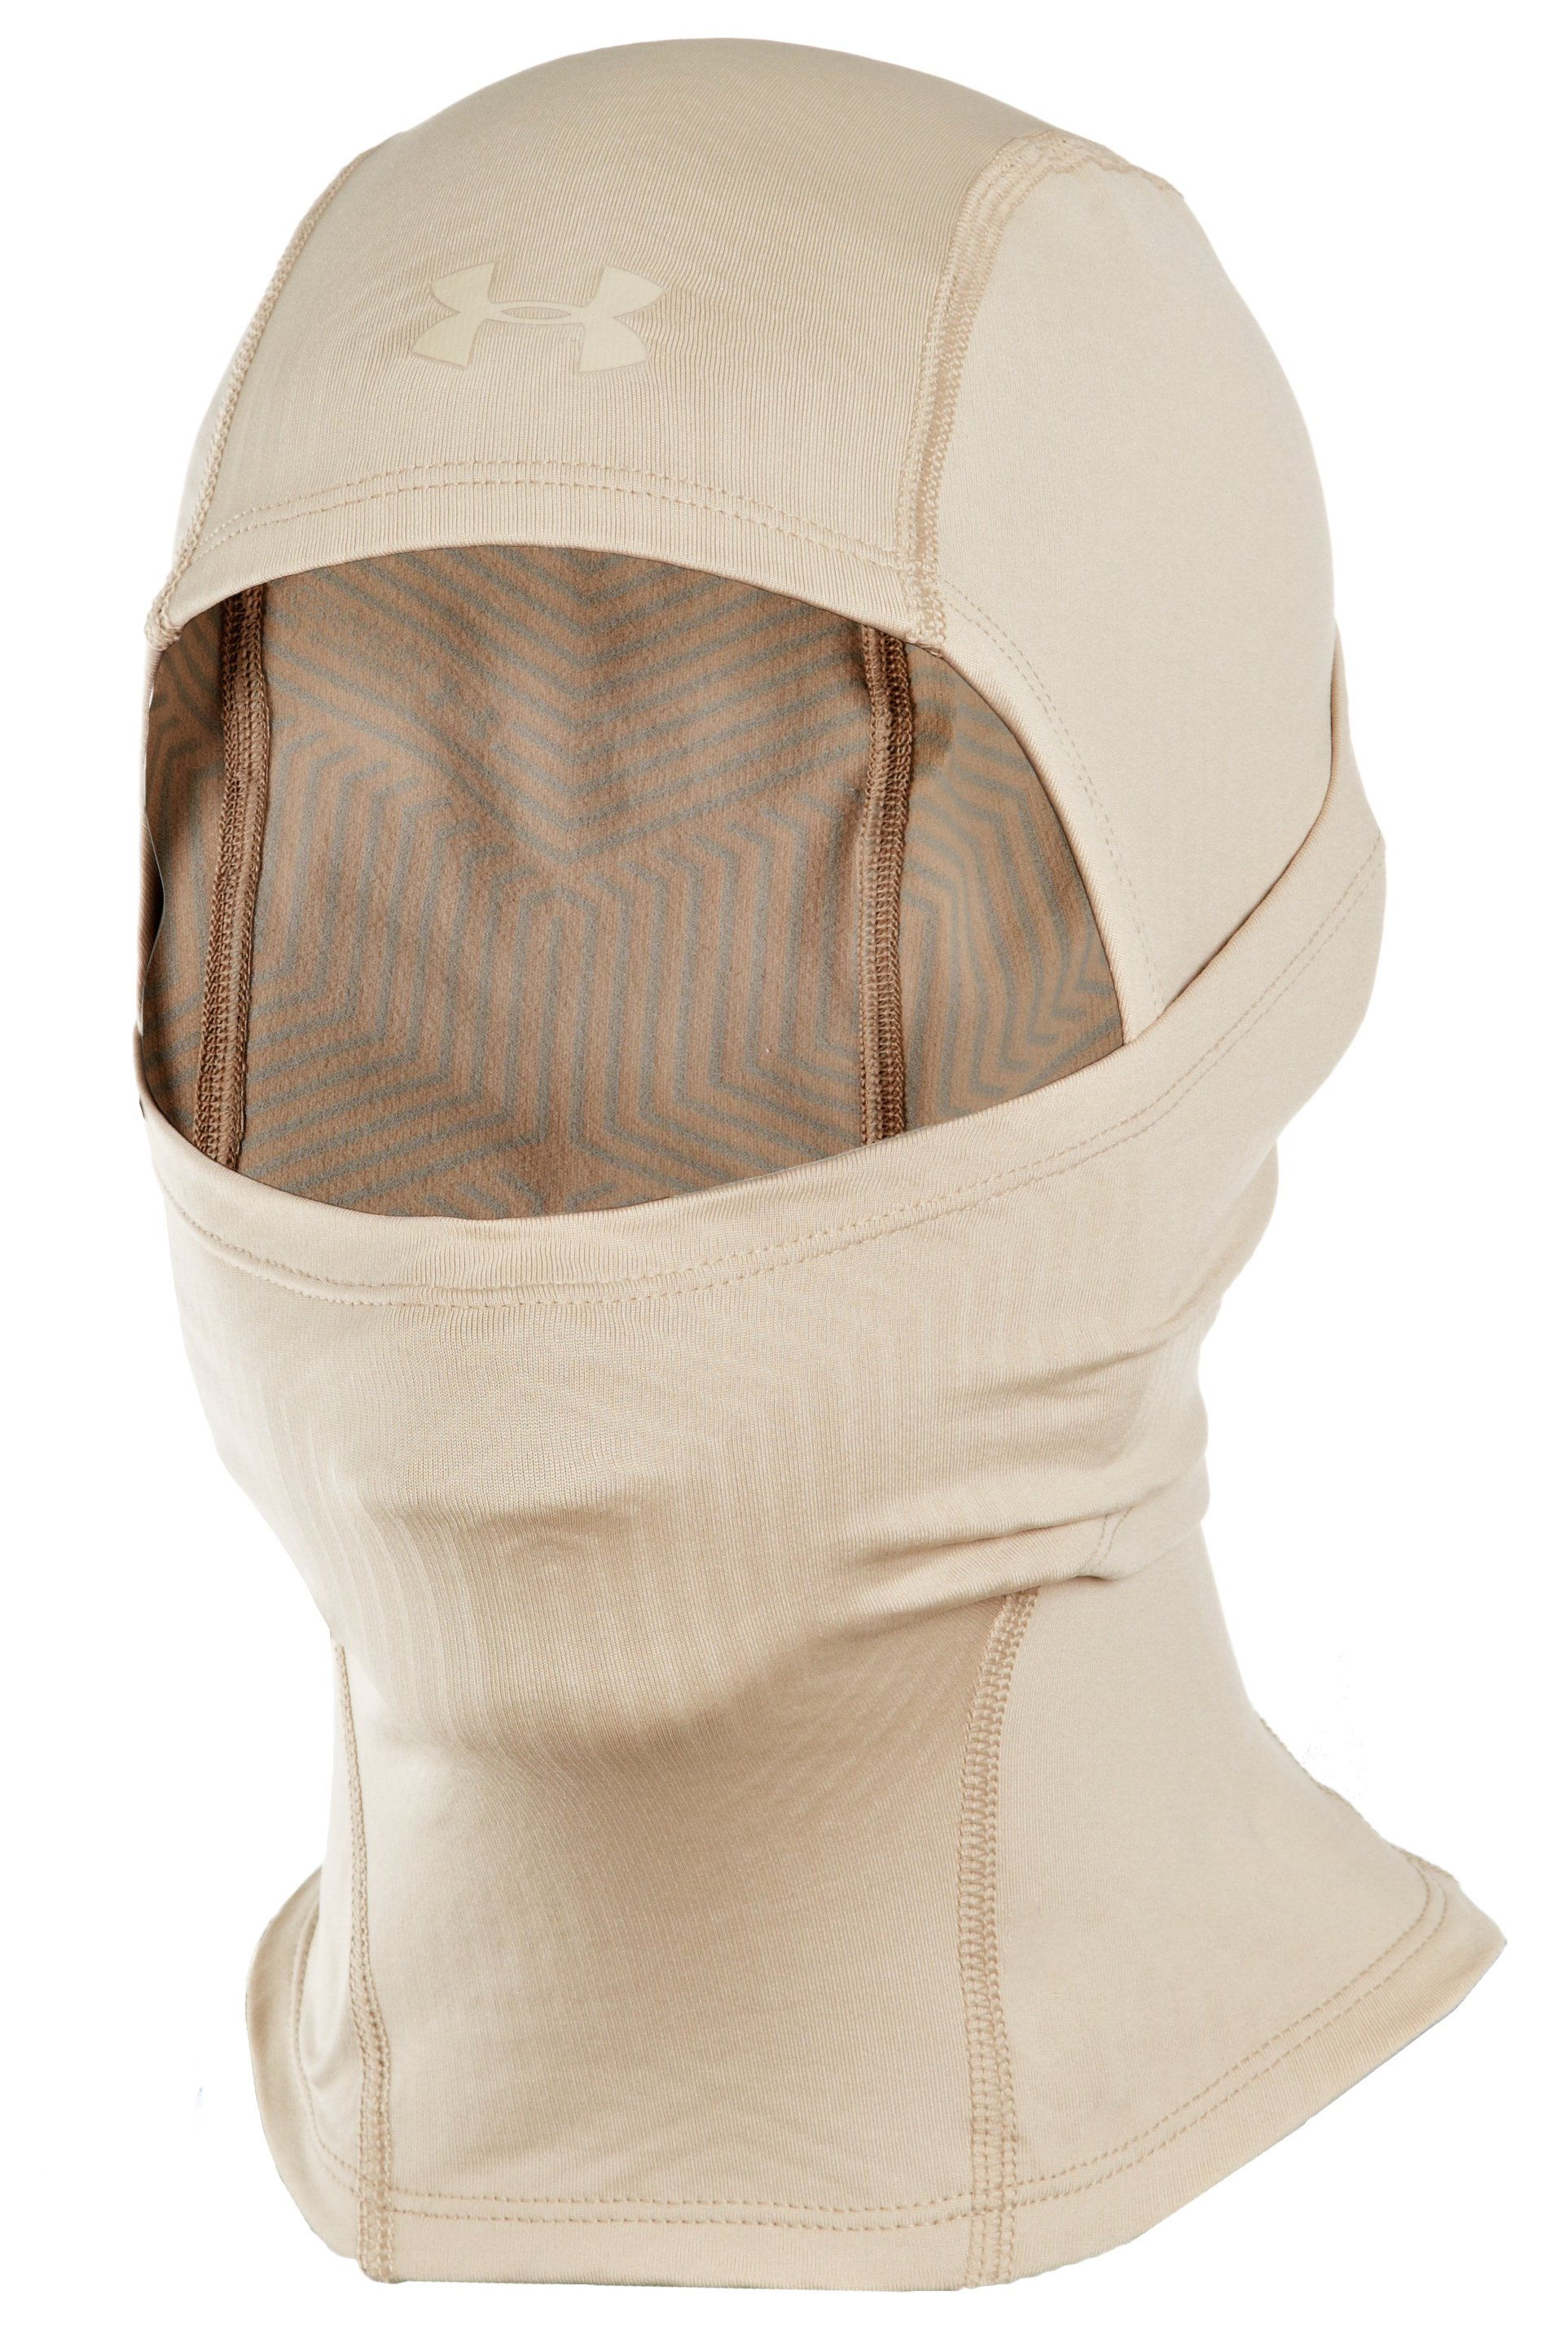 Men's ColdGear® Infrared Tactical Hood, Desert Sand